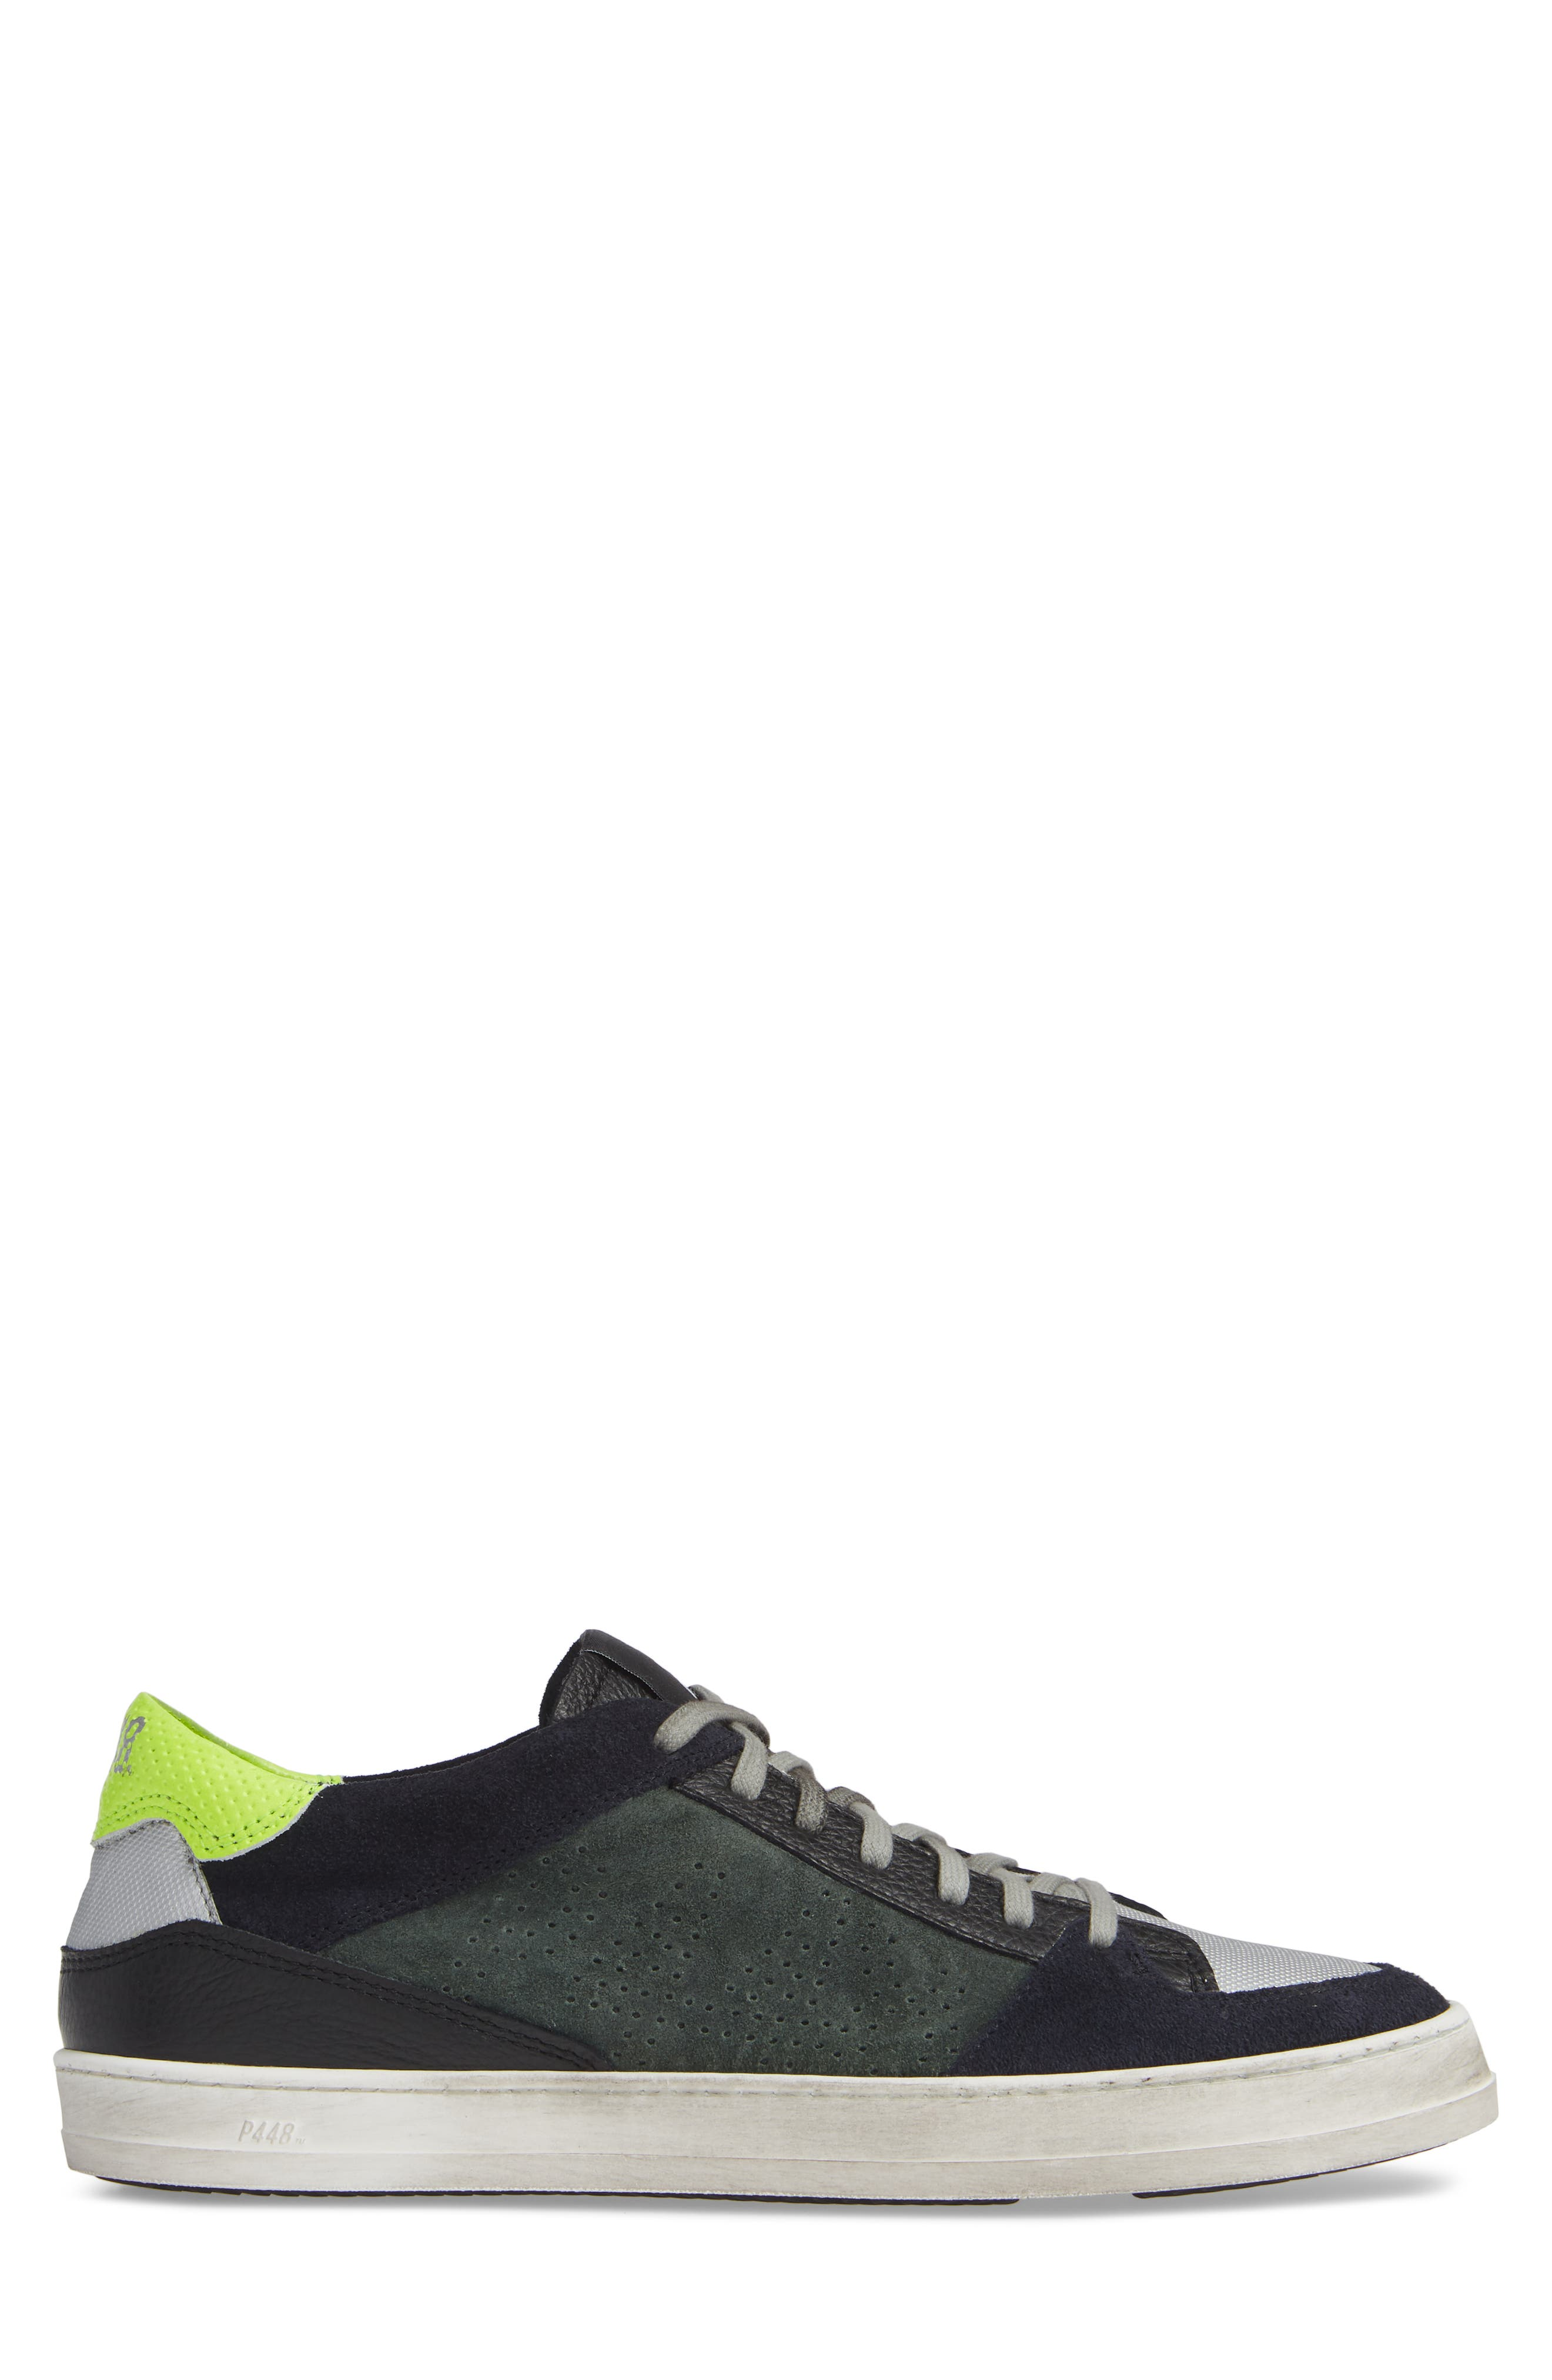 A8Queens Sneaker,                             Alternate thumbnail 3, color,                             WILLOW GREEN